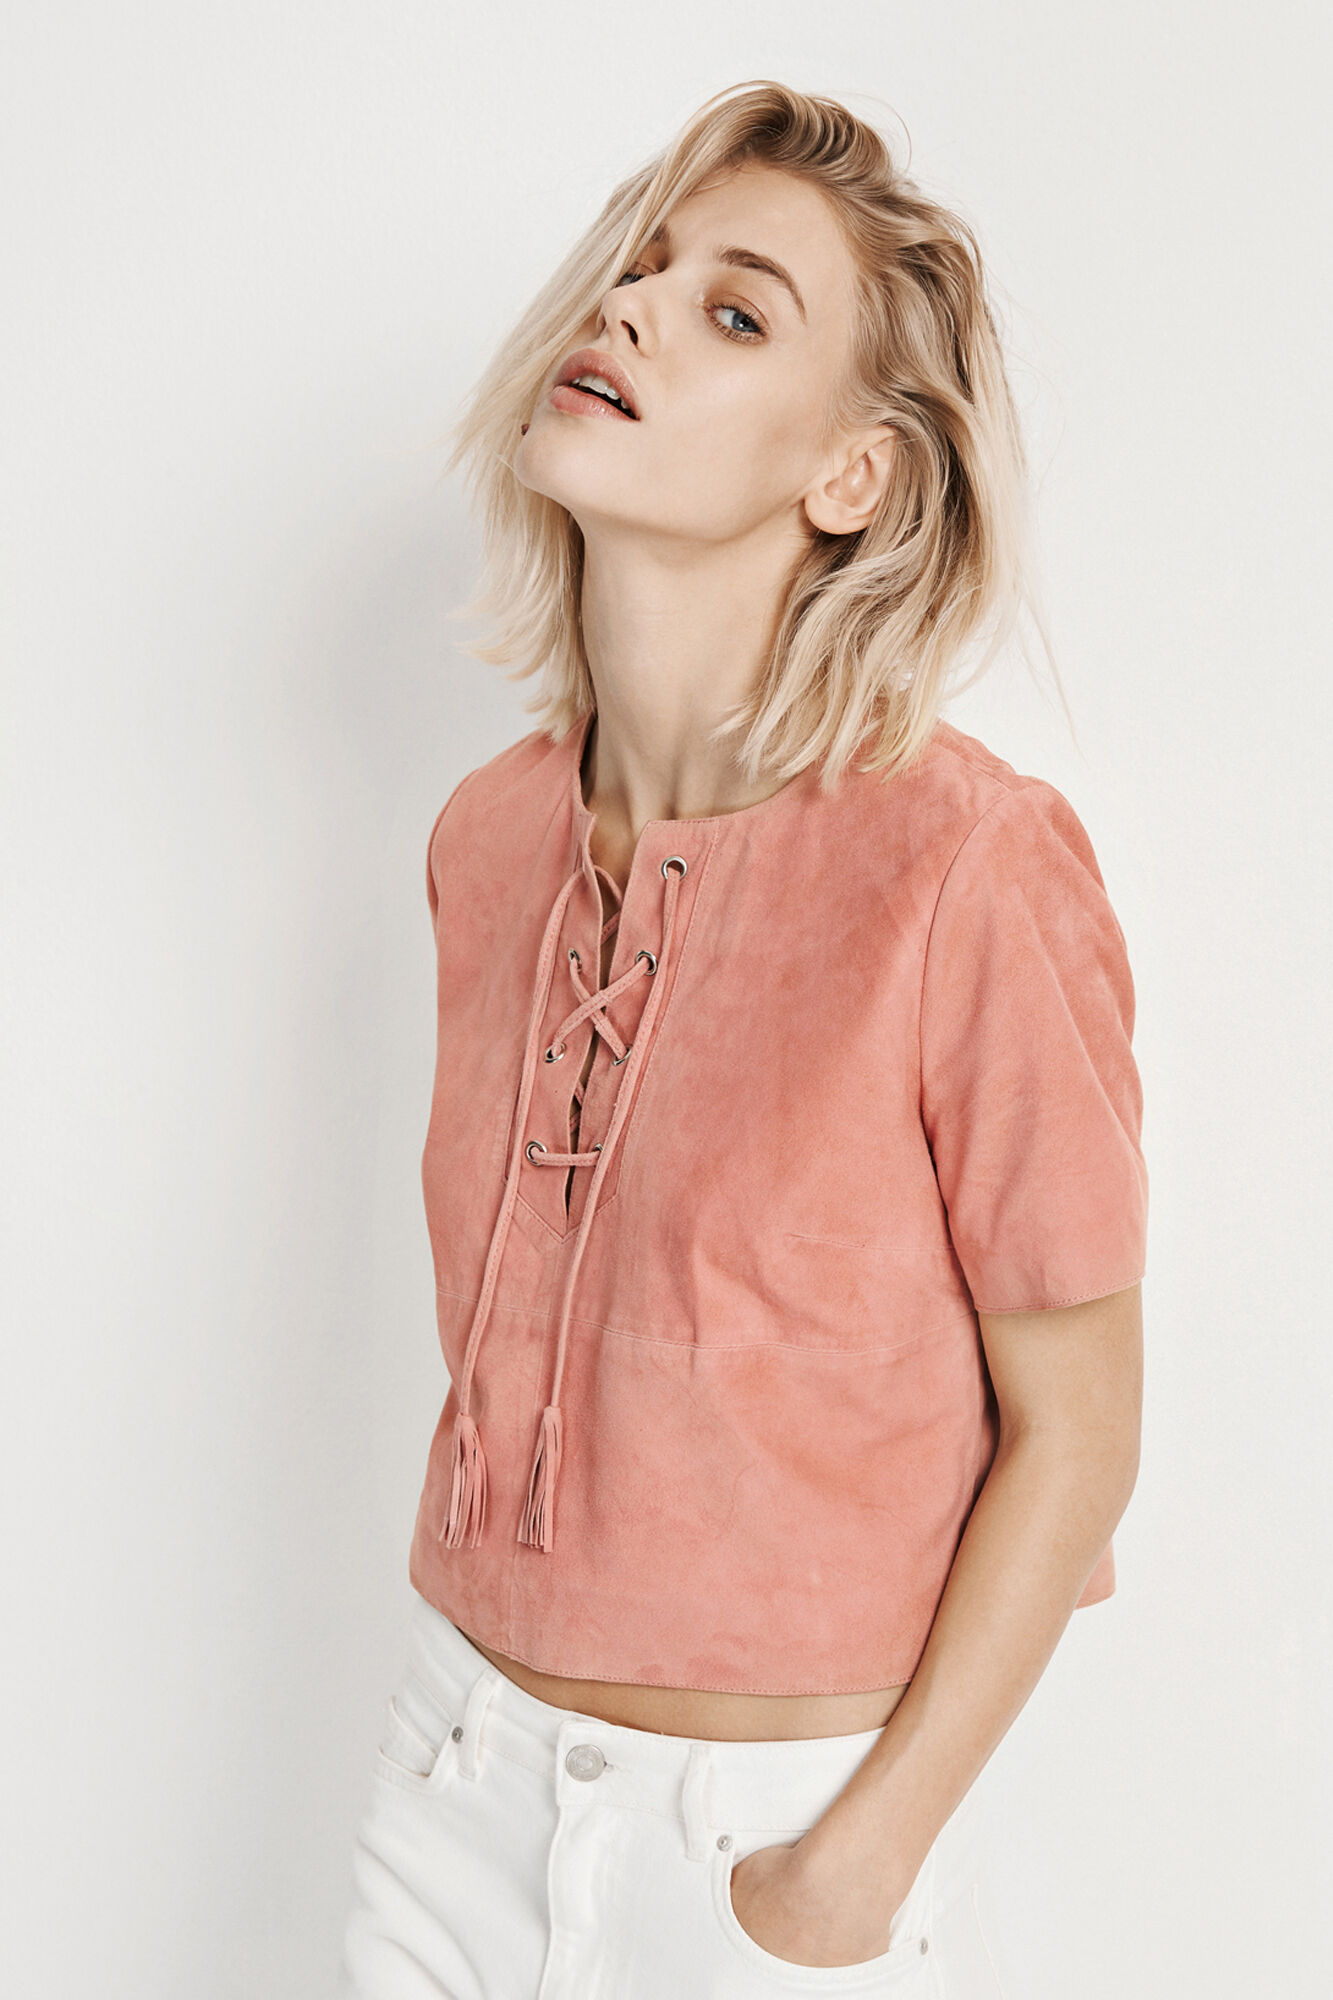 ENRODEO SS SUEDE TOP 6335, ROSEMARY LIP